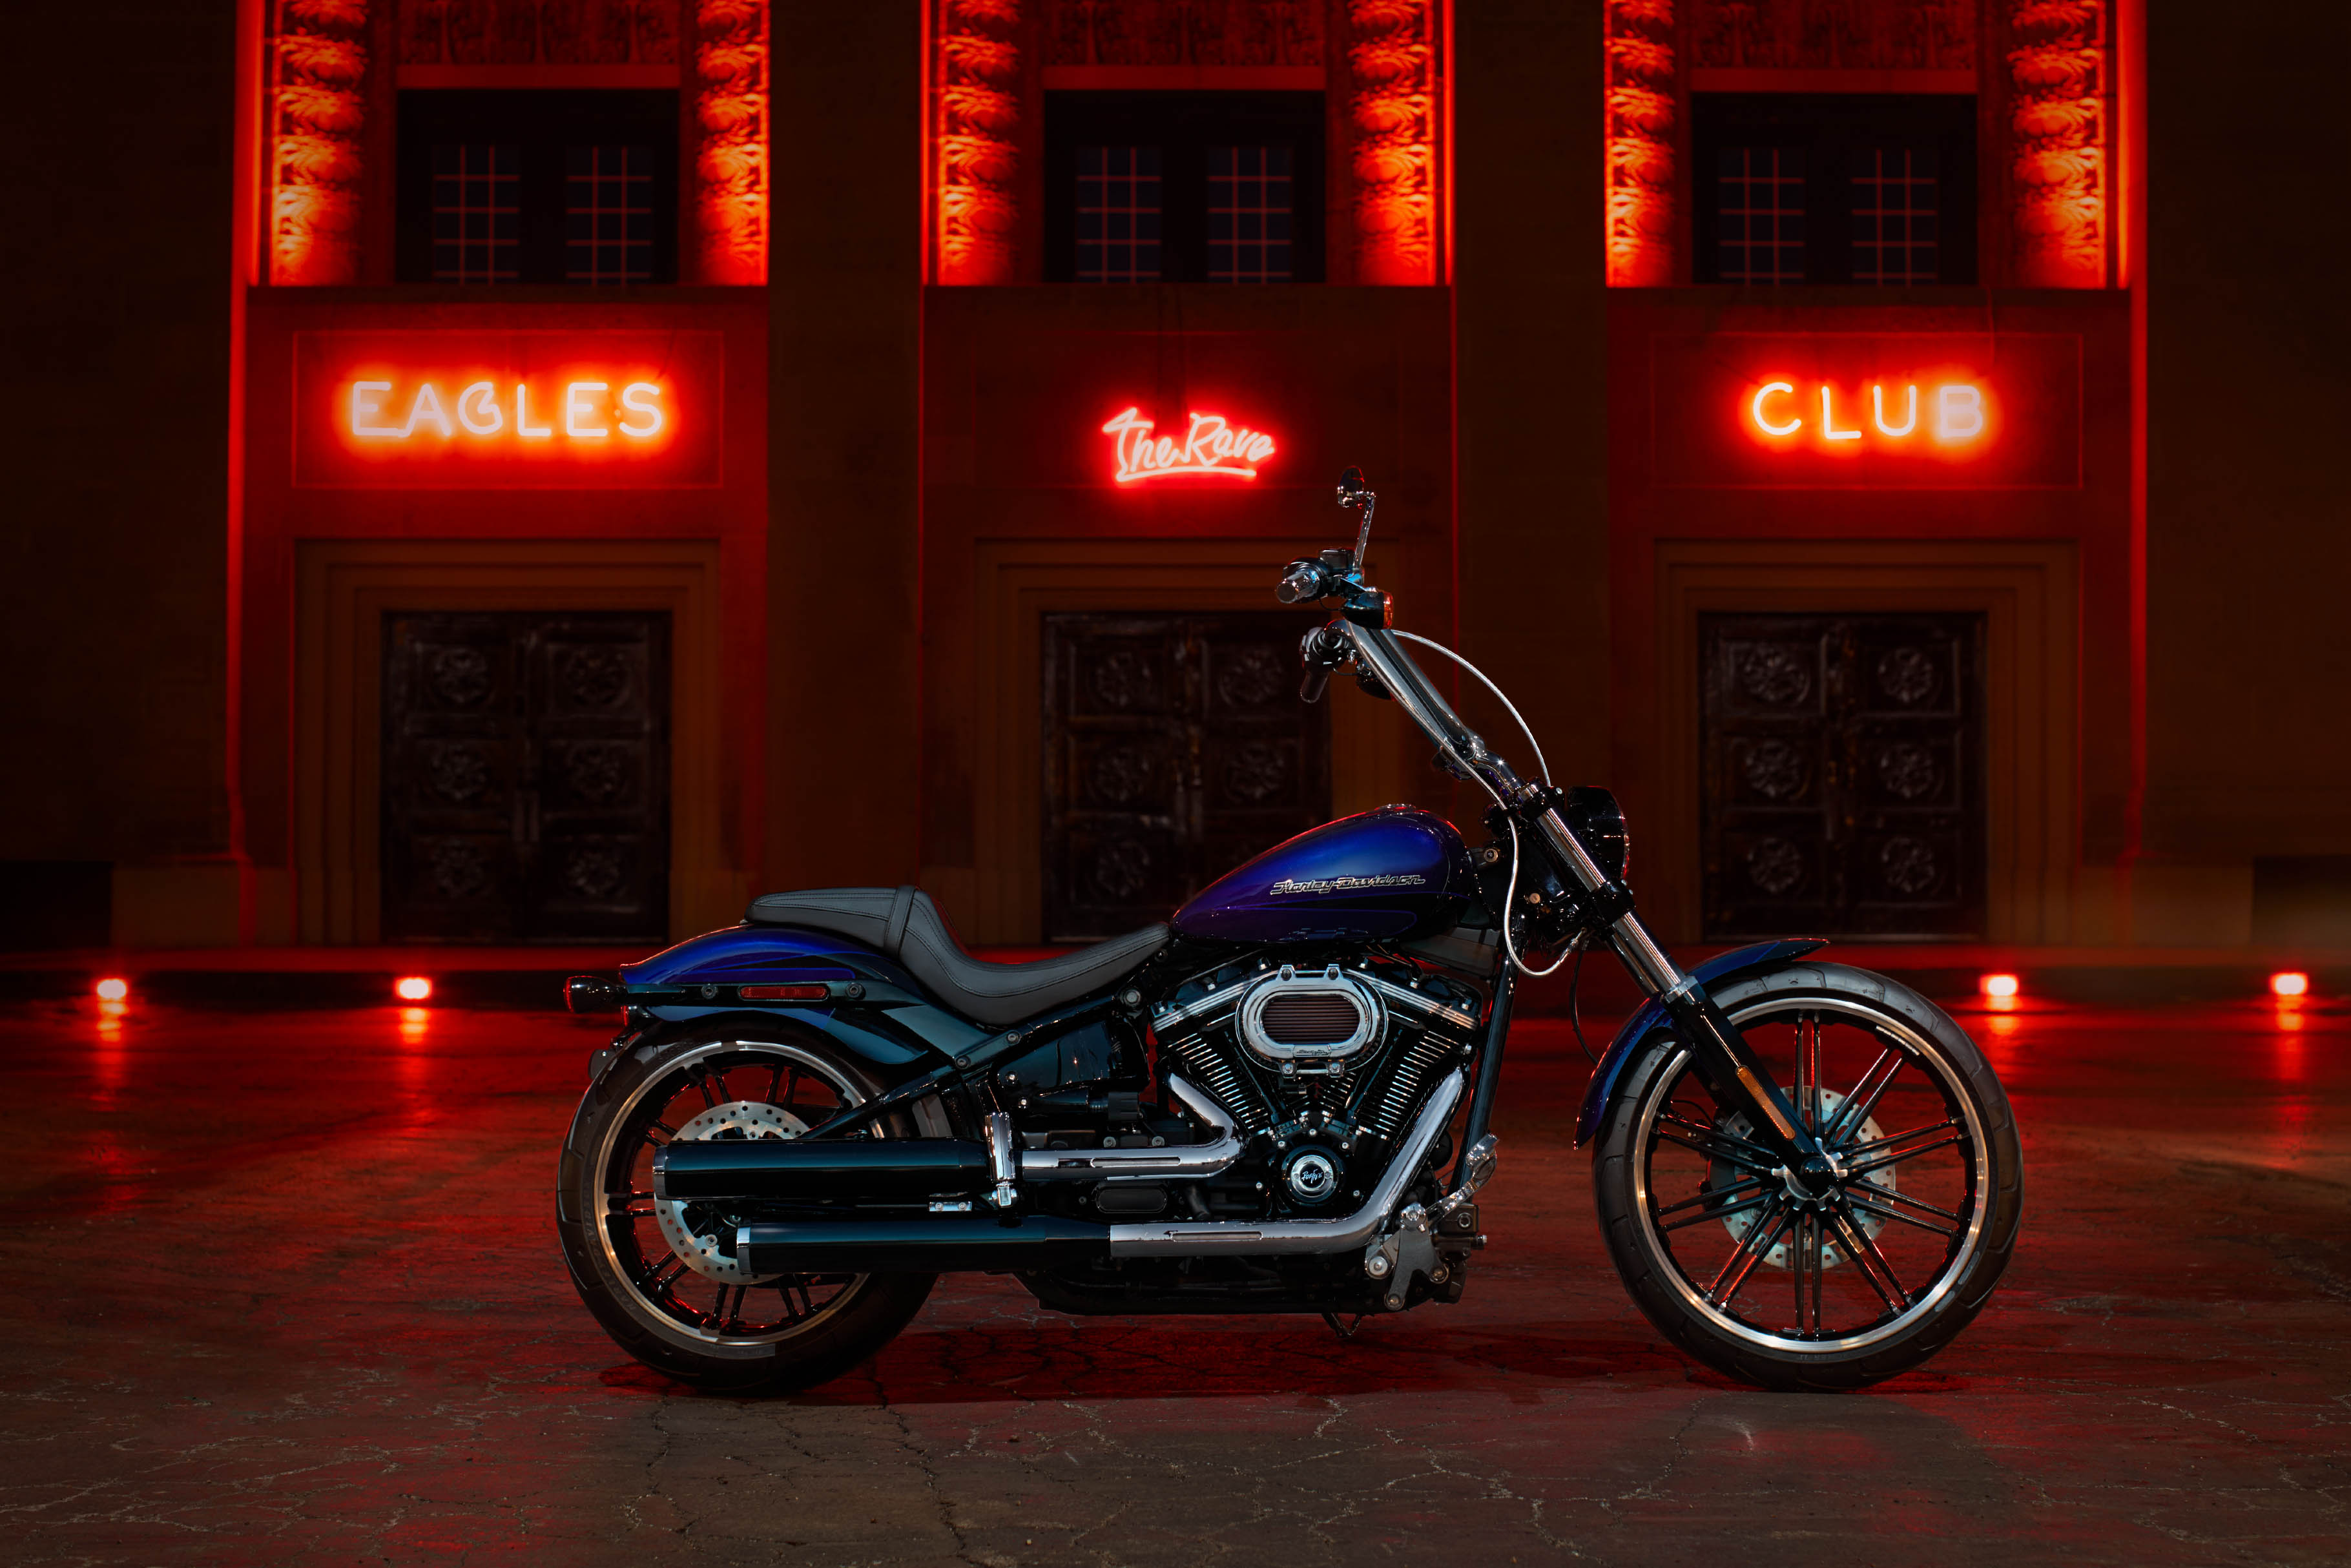 2020 Softail H-D Breakout114 Motorcycle